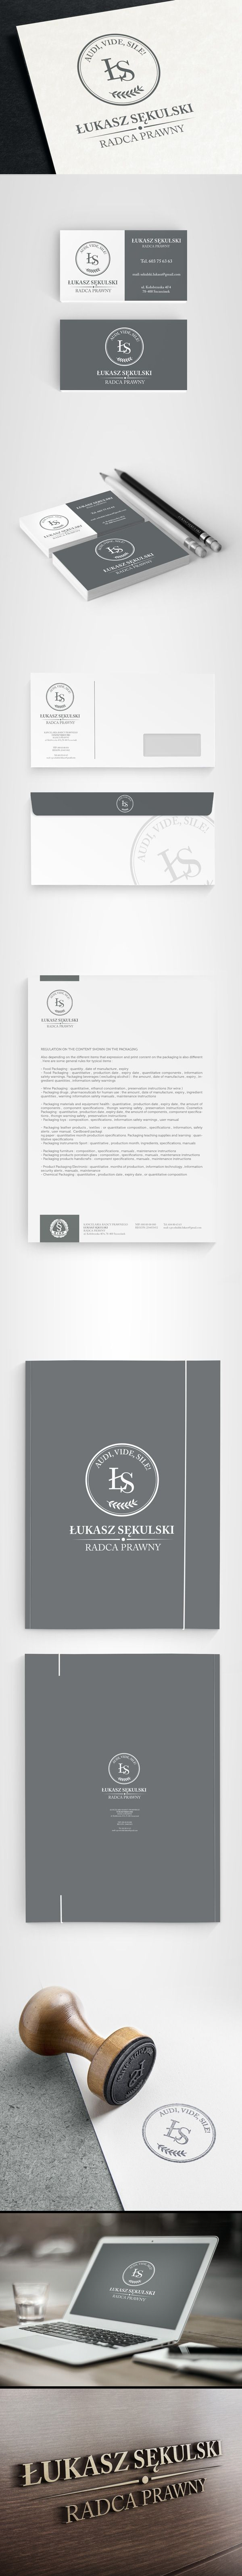 Completed brand identity for a law firm for legal advisors.                                                                                                                                                      More